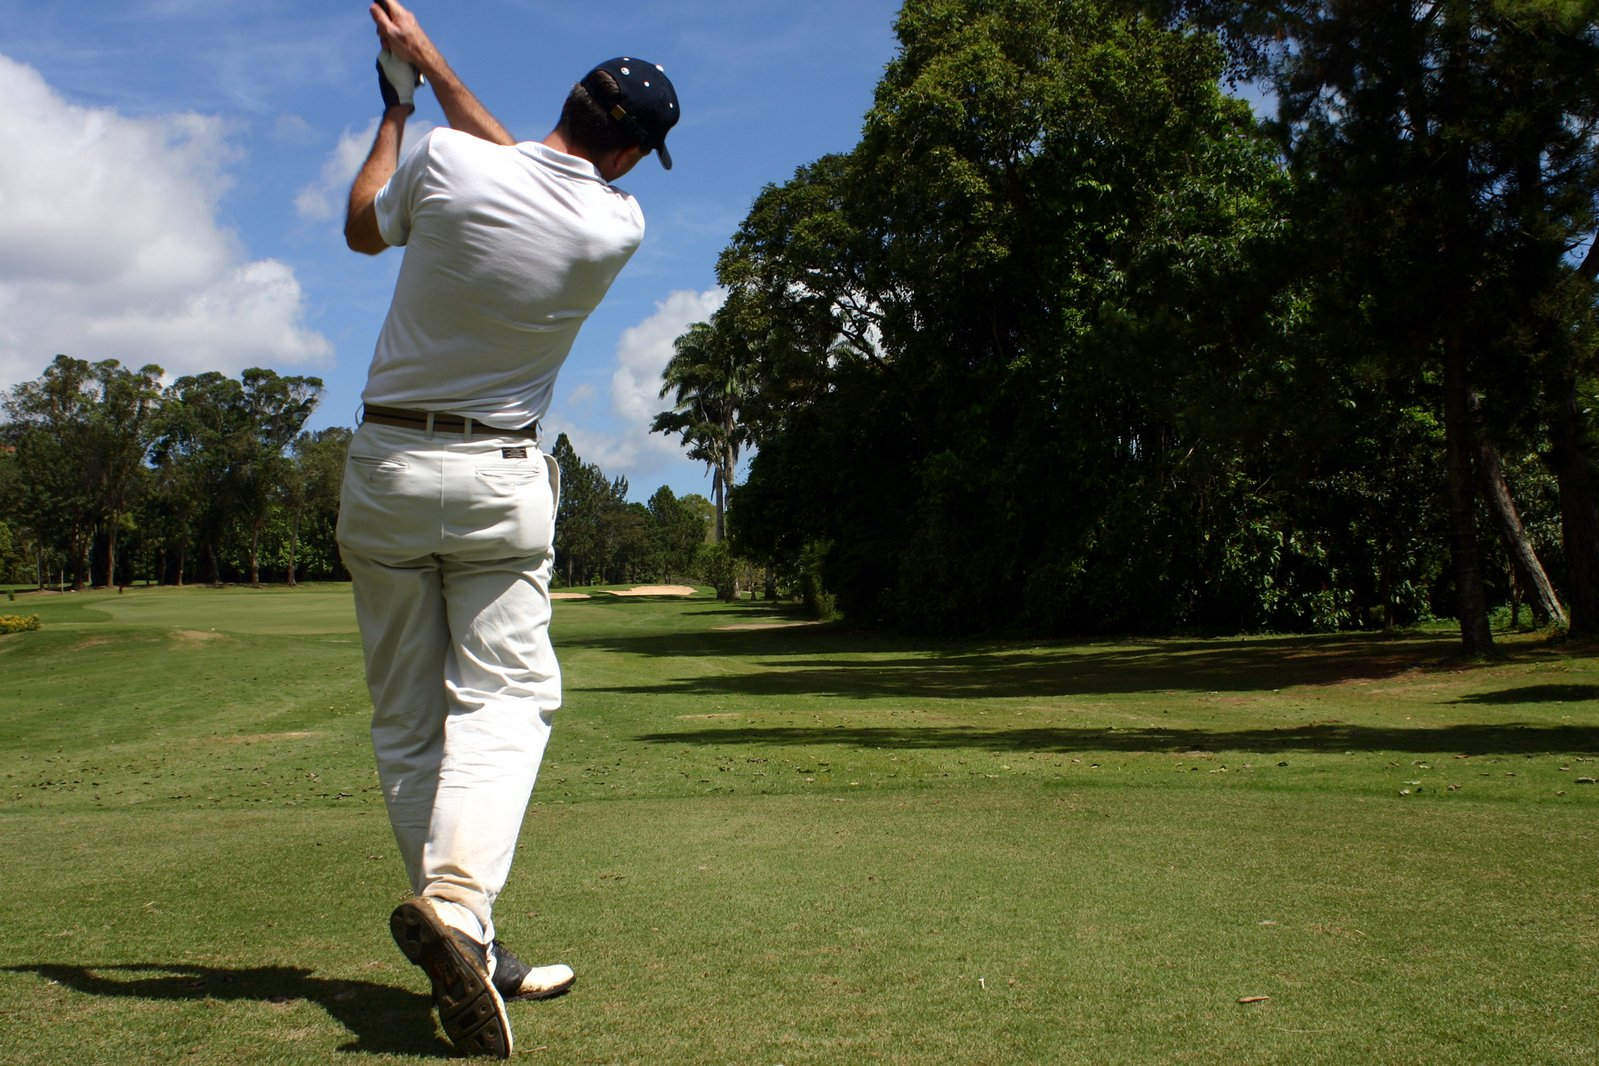 Eliminate Distractions on the Golf Course